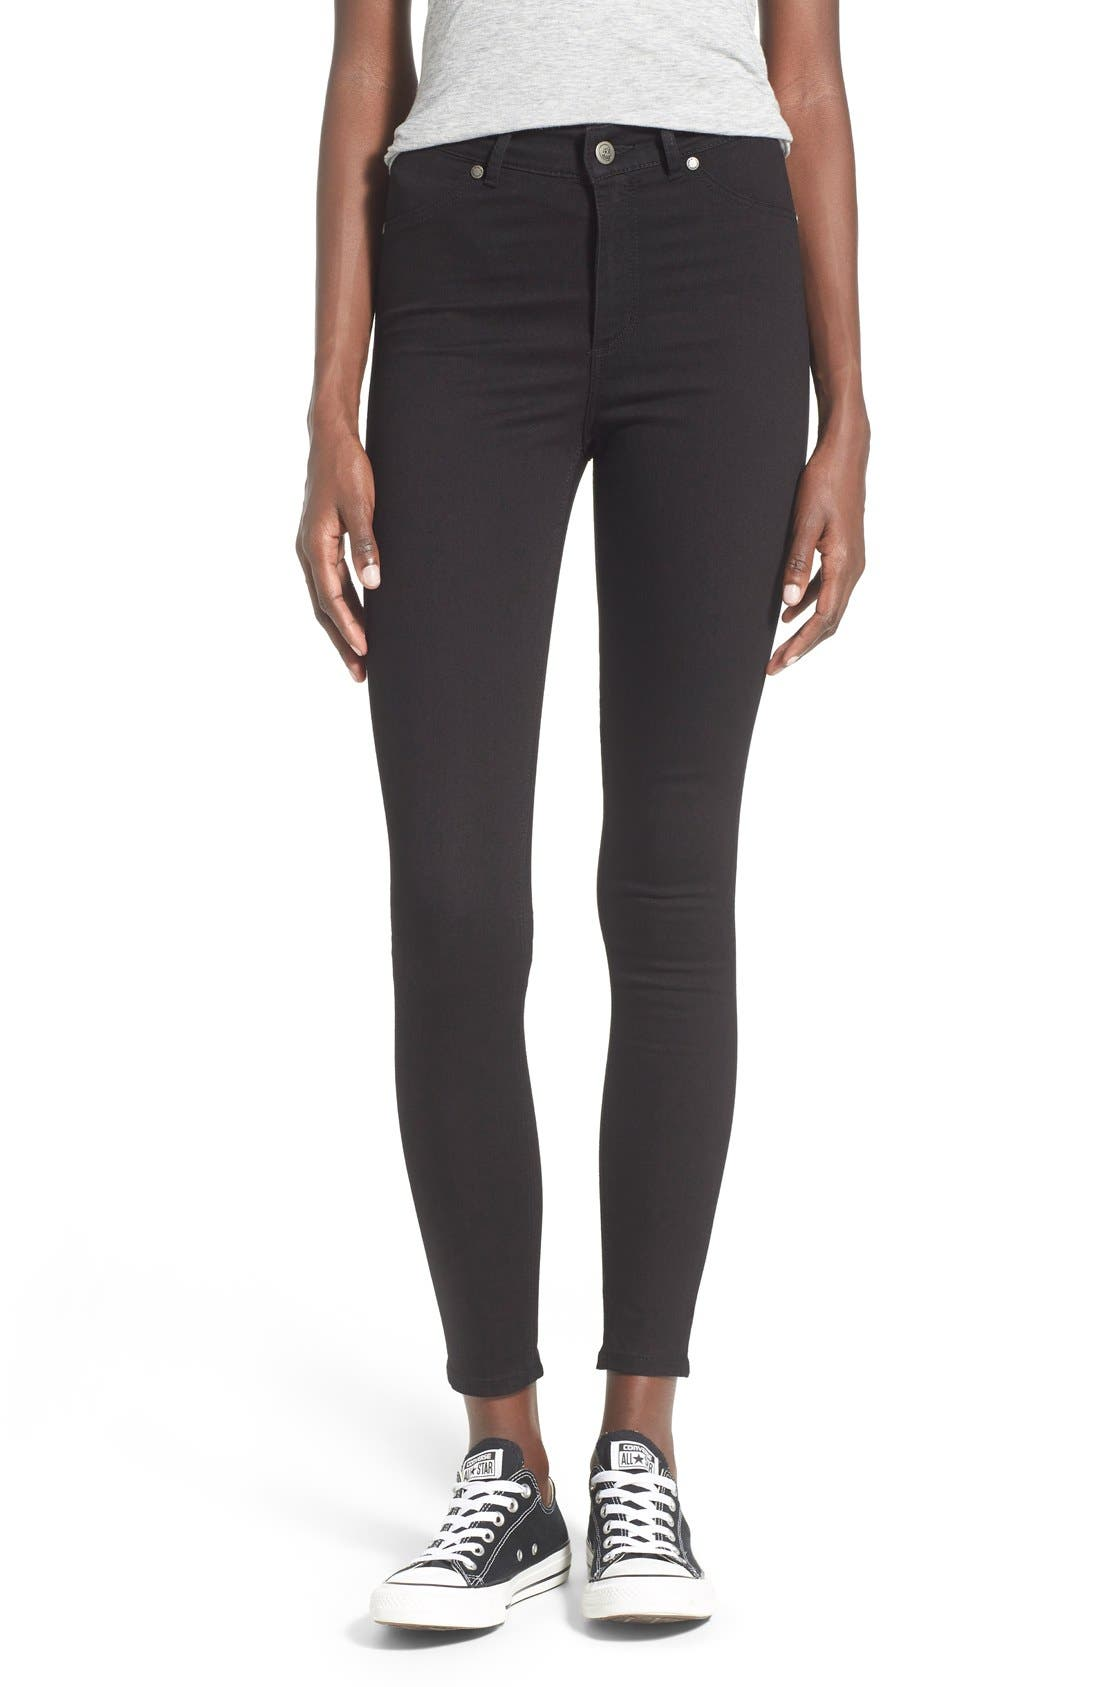 Alternate Image 1 Selected - Cheap Monday High Rise Super Skinny Jeans (Black)